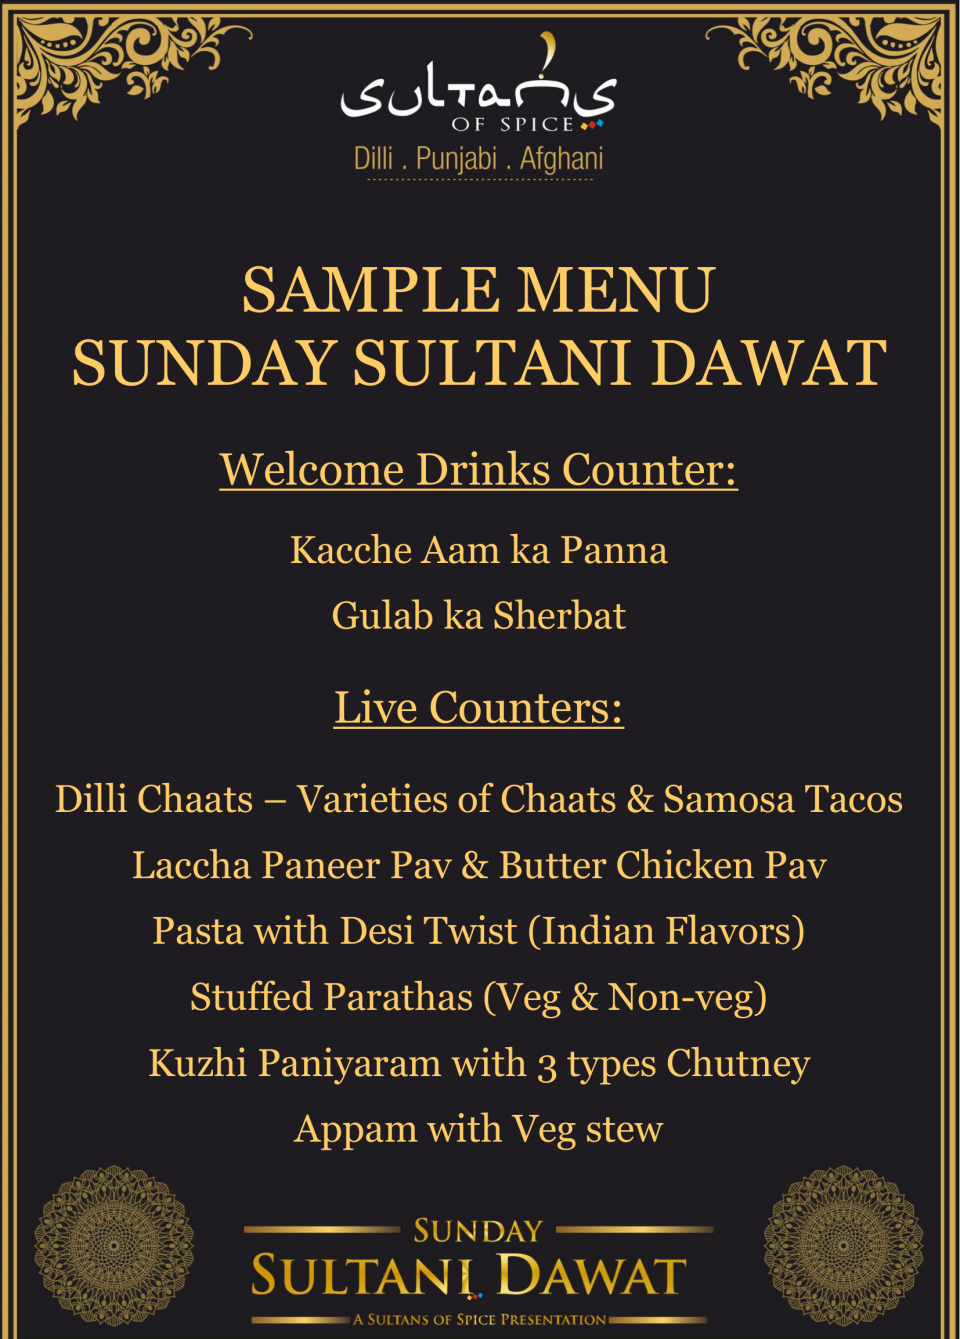 SAMPLE MENU SUNDAY SULTANI DAWAT AUG 2019 mdg02n-1